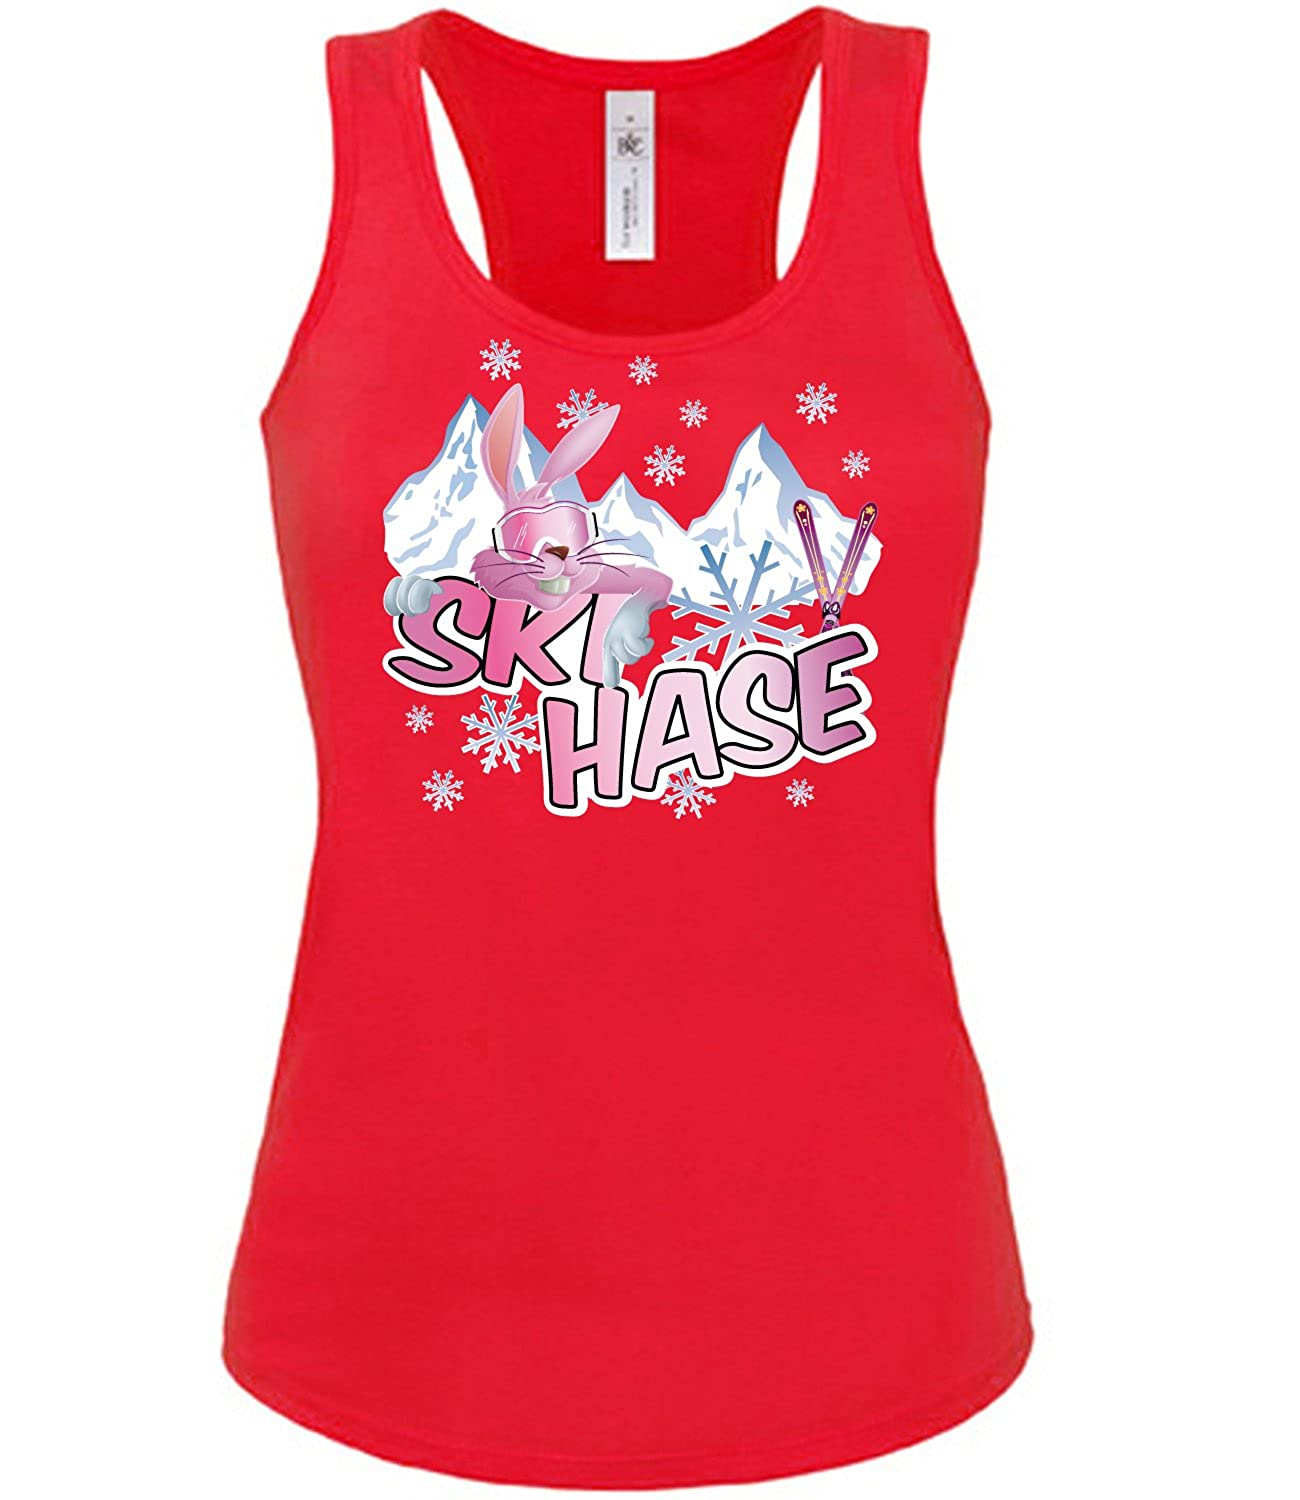 Wintersport - APRE`S SKI - SKIHASE - Cooles Fun Tank Top Damen S-XL - Deluxe